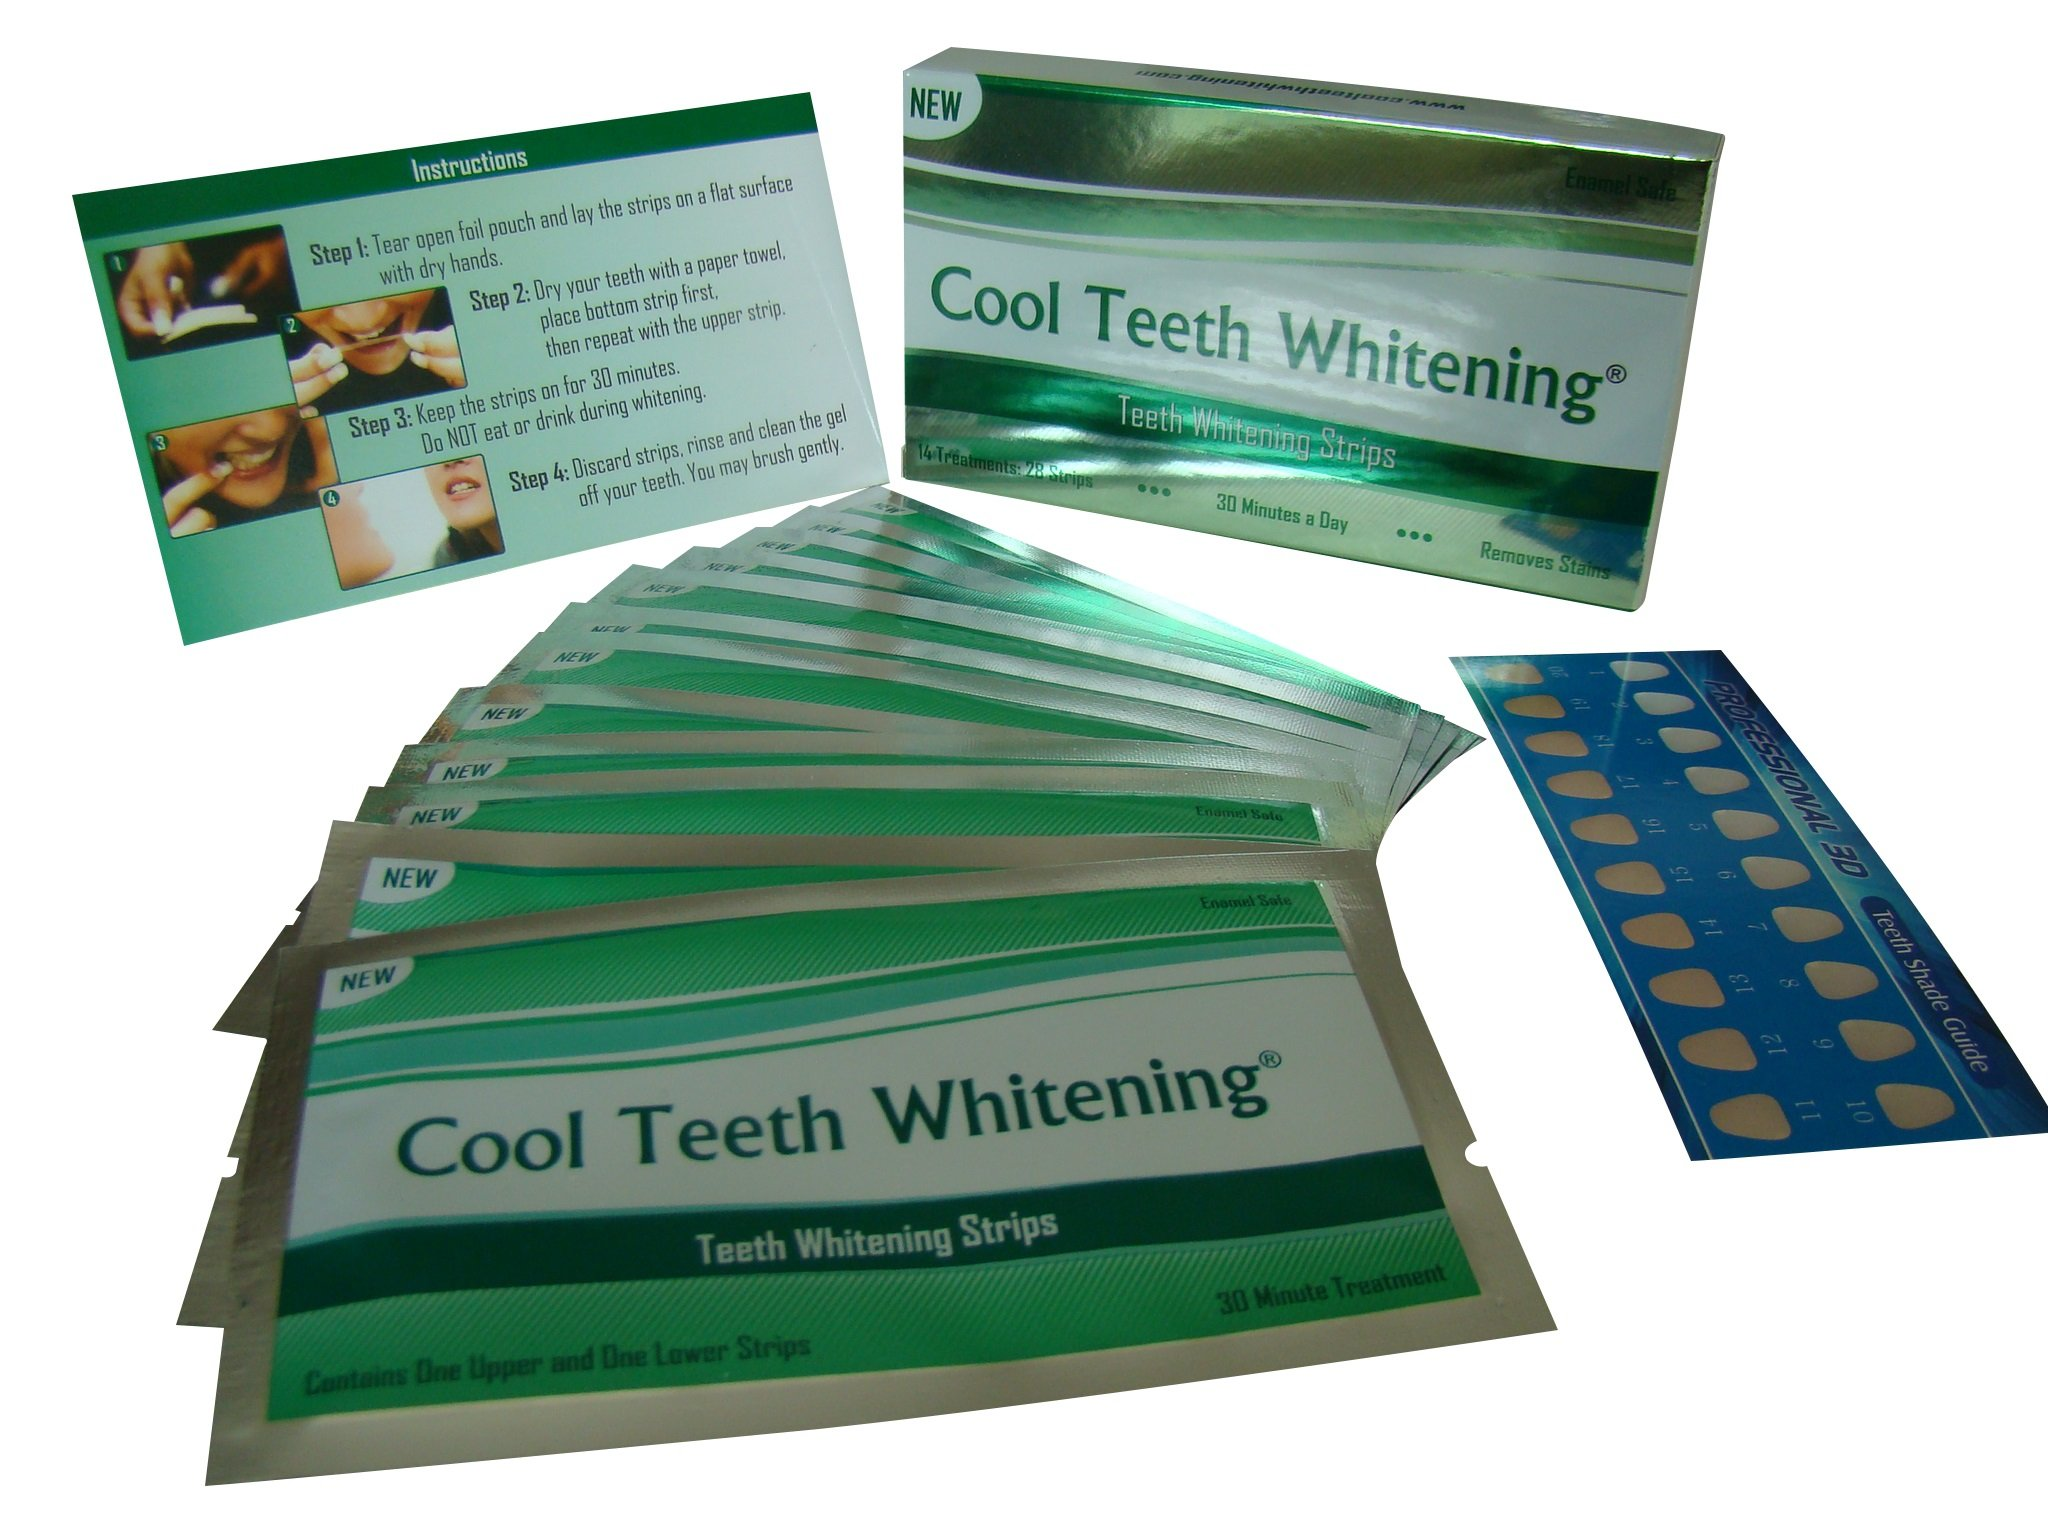 Cool Teeth Whitening® 14 Treatments Advanced Professional 6% Hp Strength Dual Elastic Band Teeth Whitening Gel Strips Kit 28 Pcs - 2 Week Supply + Free Color Chart Guide Included - Hydrogen Peroxide White Tooth By Cool Teeth Whitening®